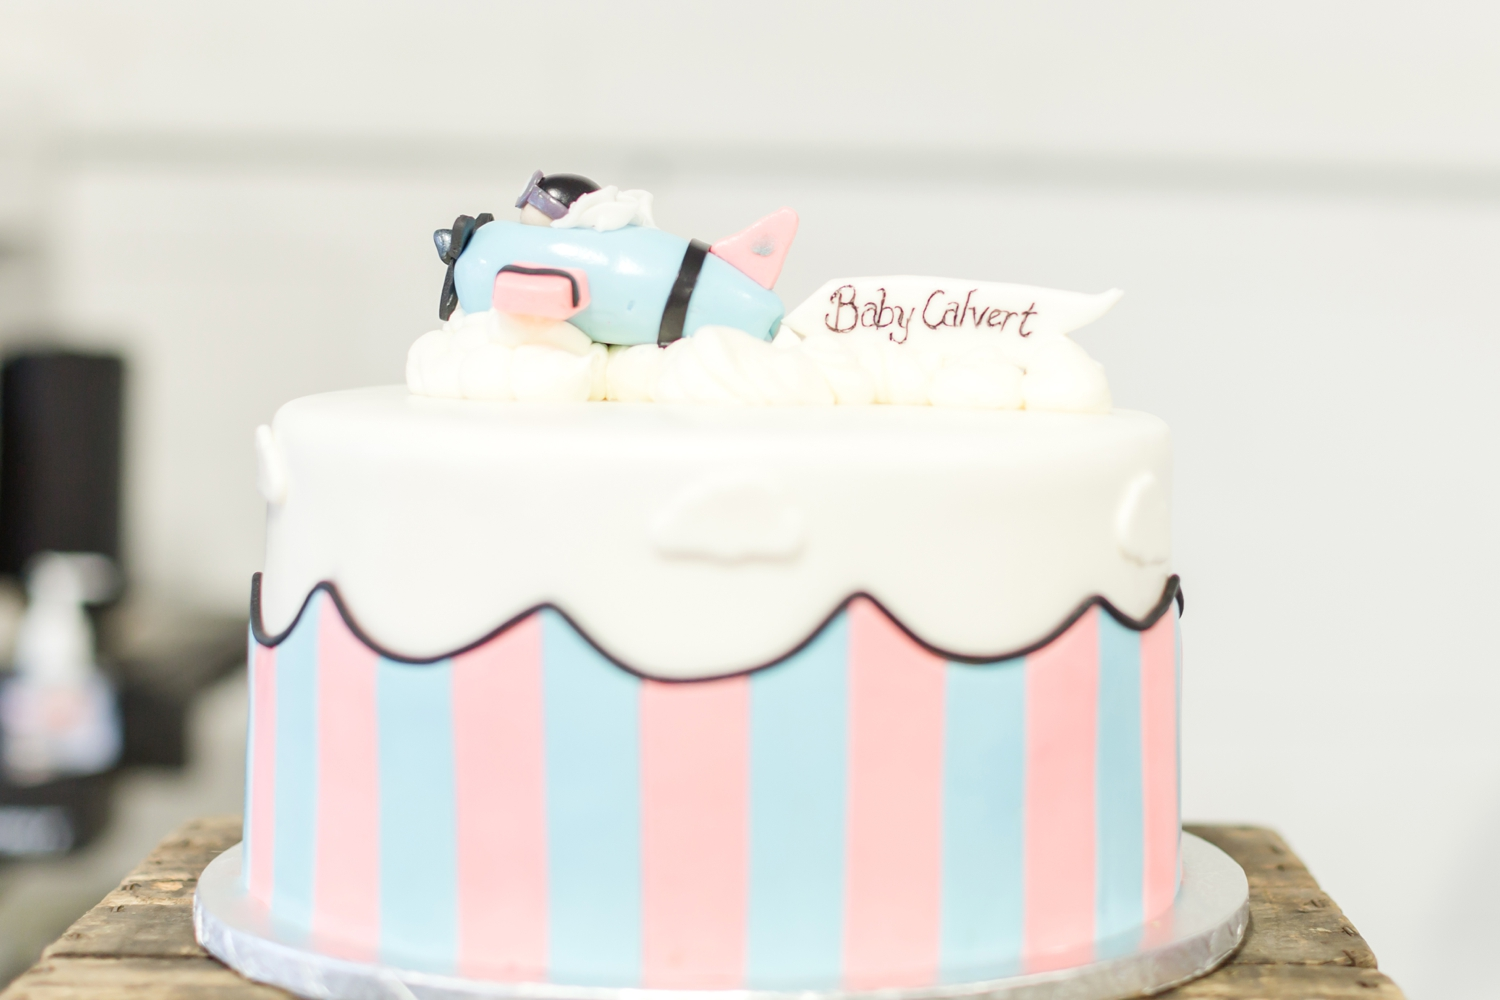 This cake is so cute!